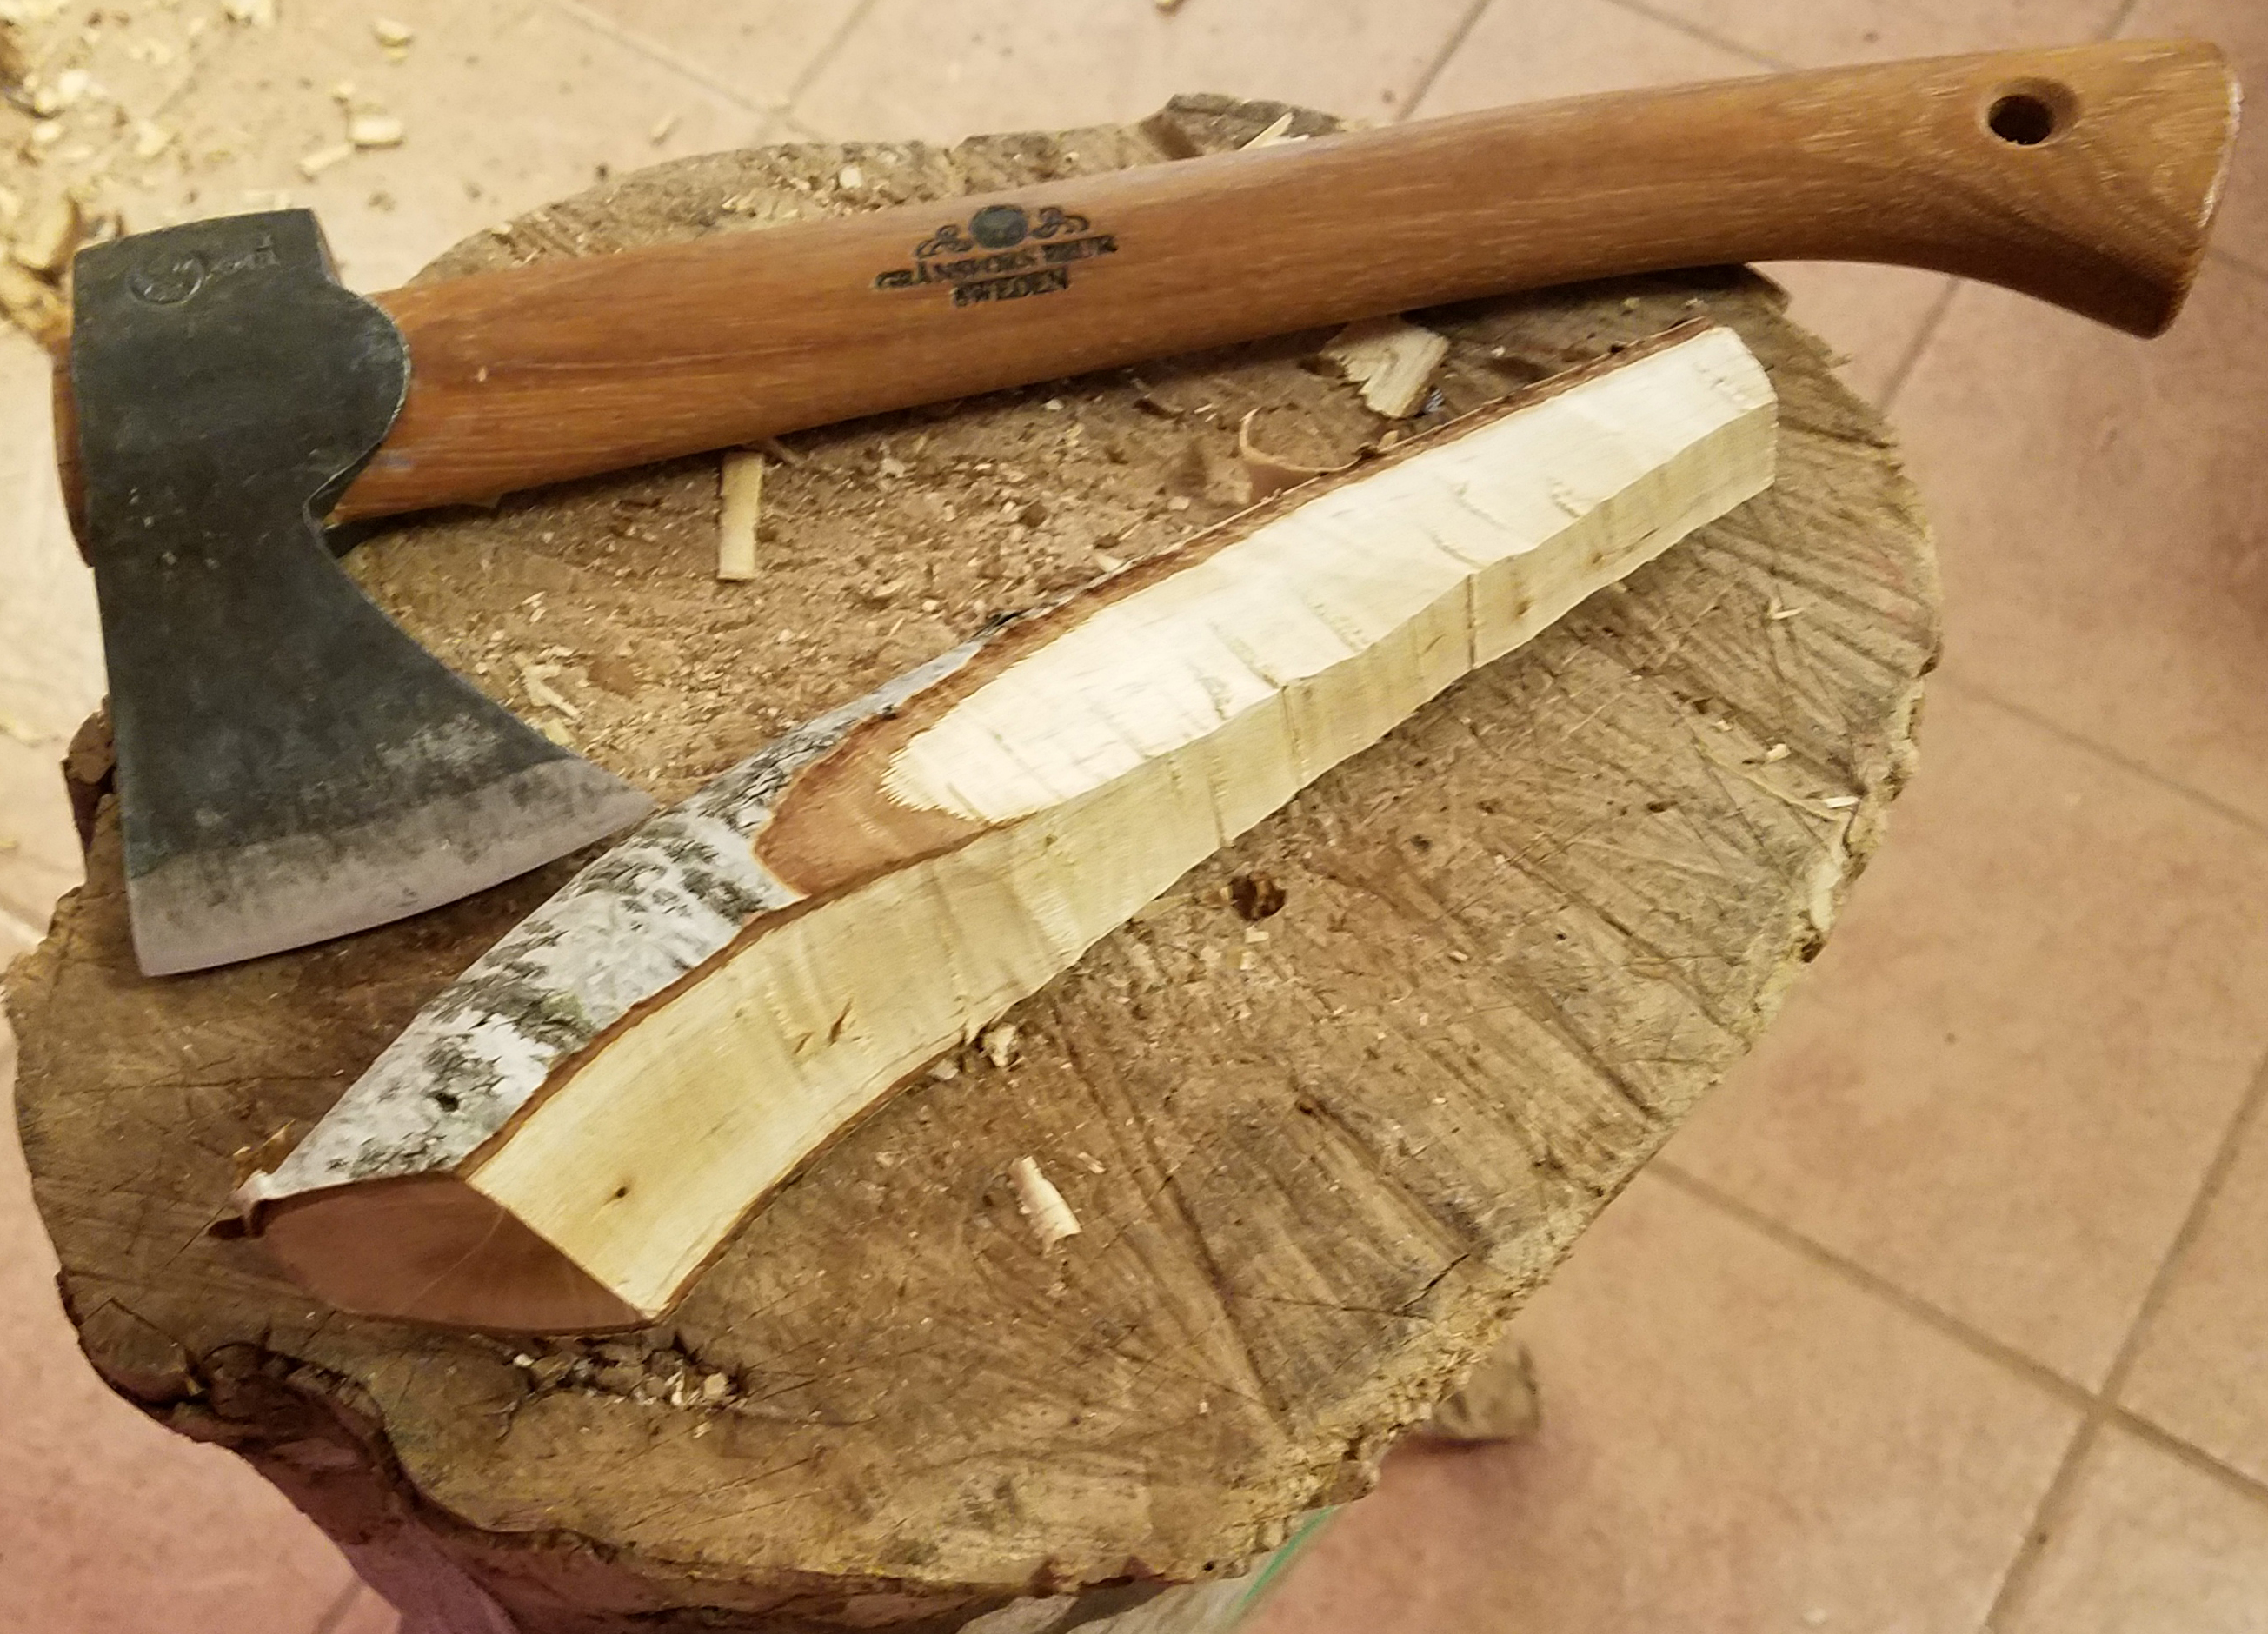 A birch-blank roughed out with an axe